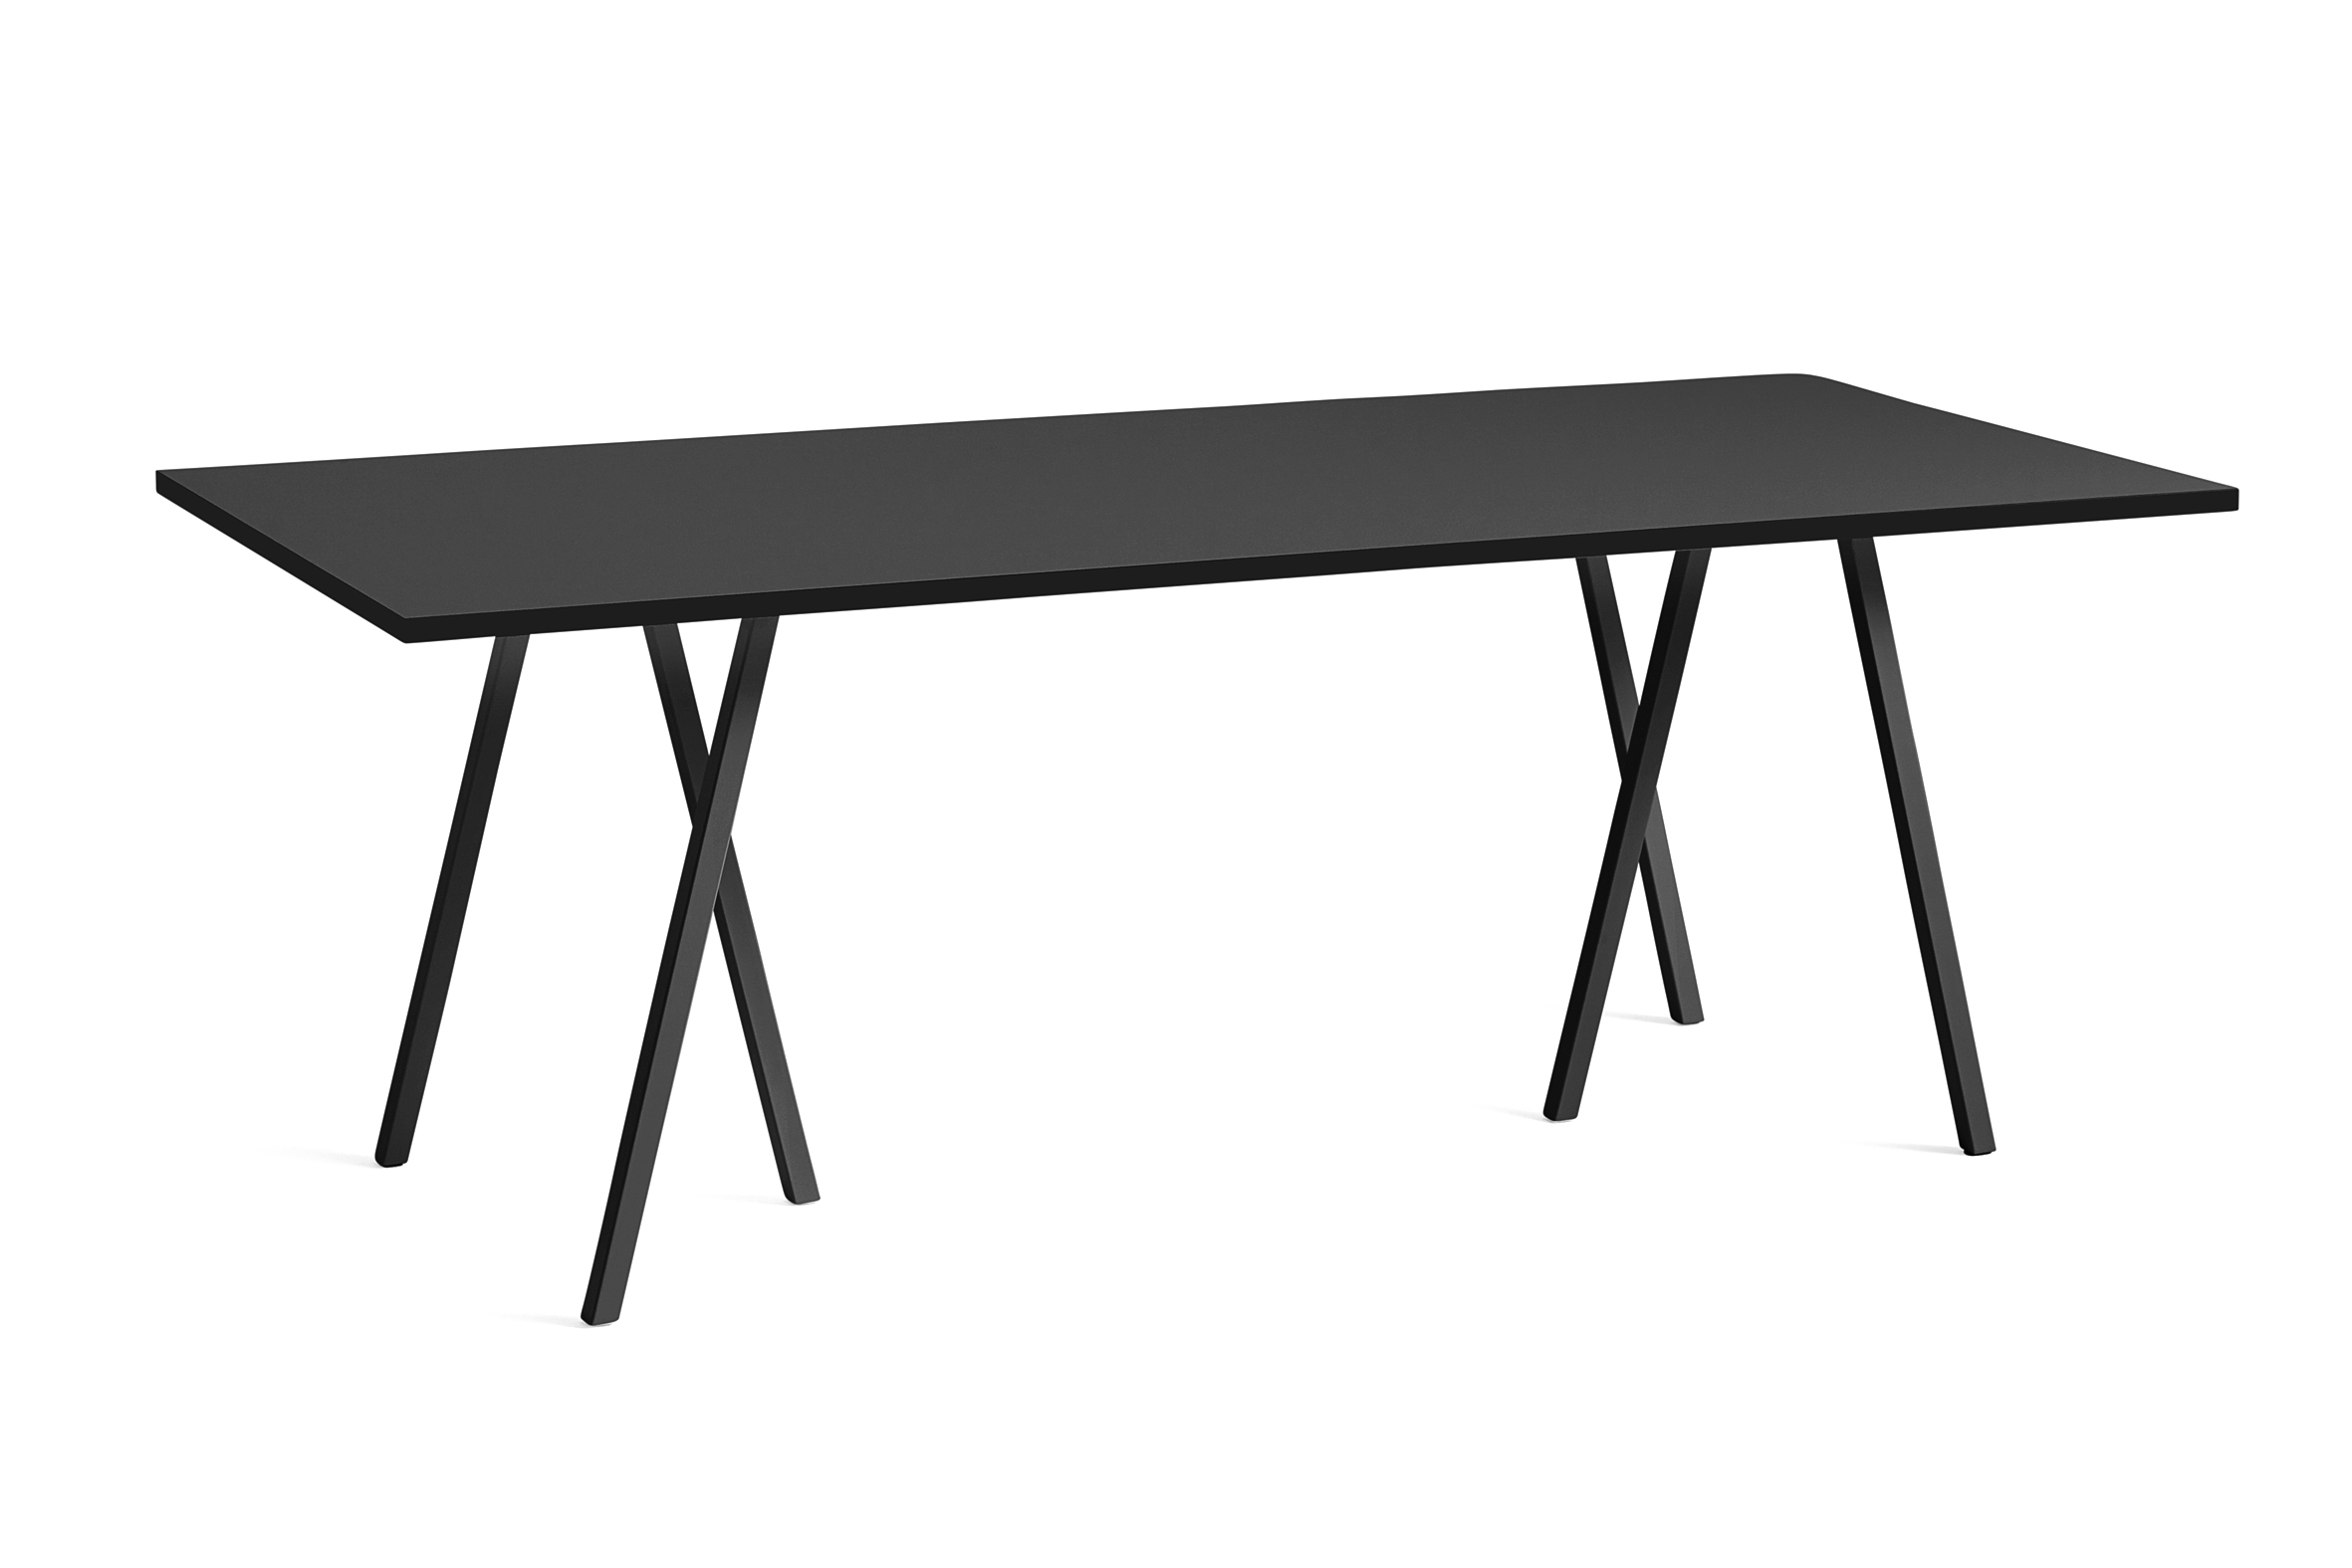 Loop stand table black 200 cm